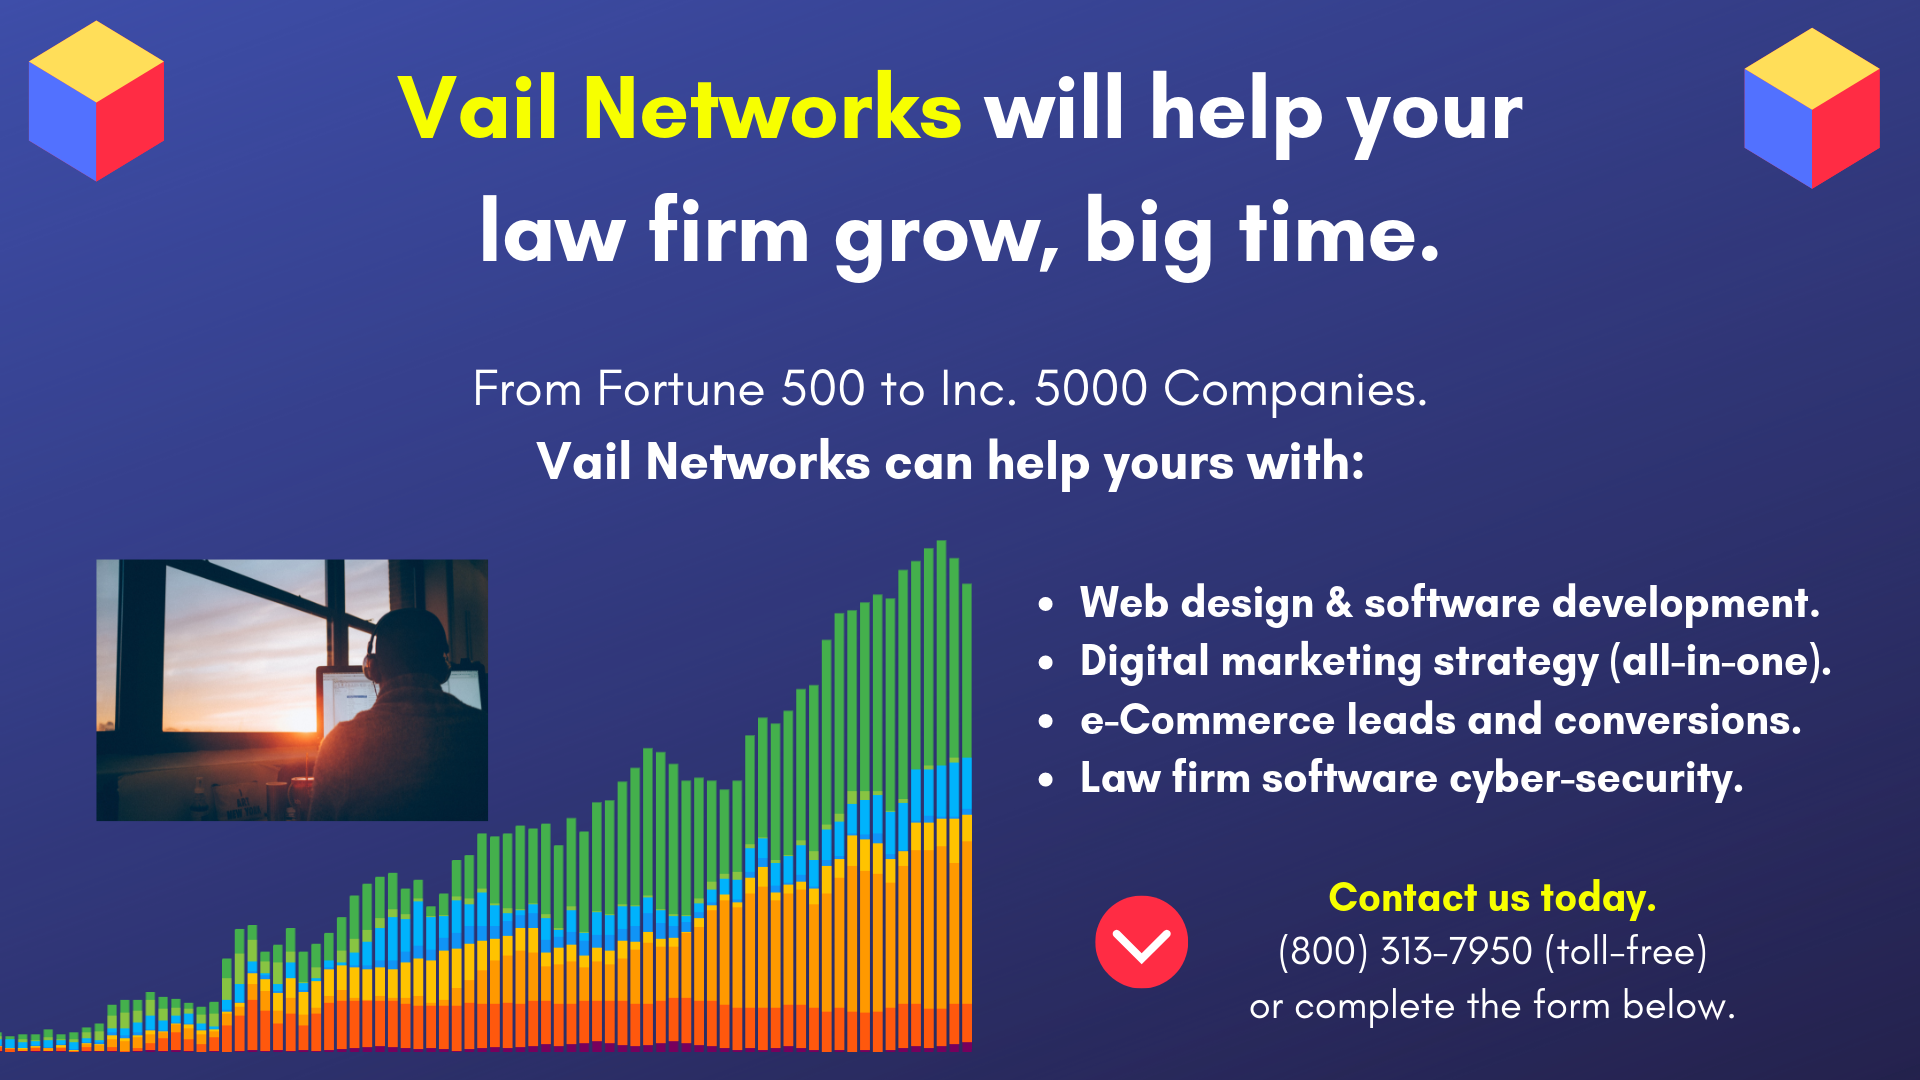 Company to help law firm and attorneys with web design, SEO, development, and marketing: vailnetworks.com